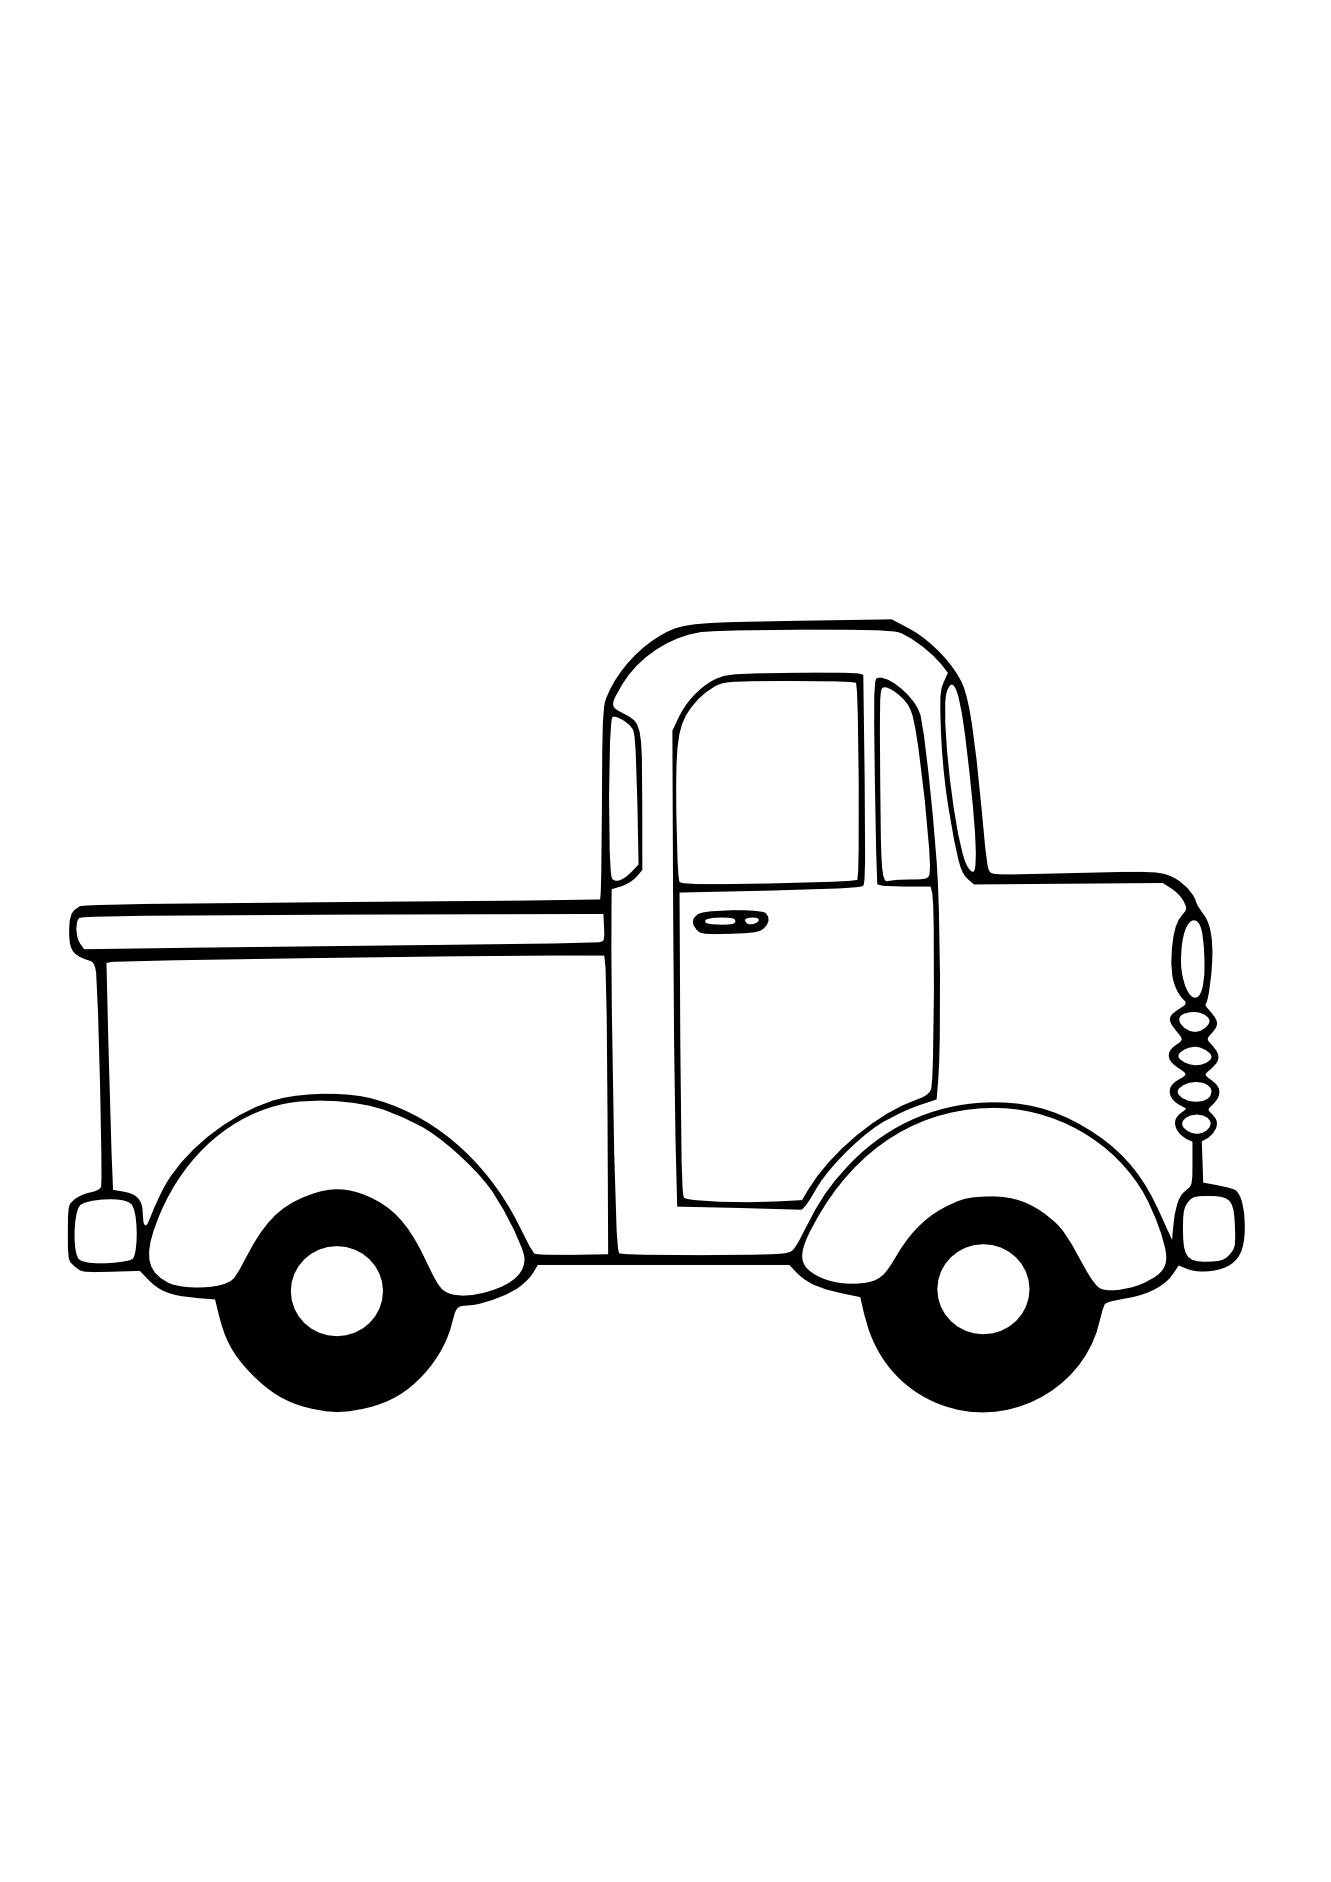 -clipart-black-and-white-police-officer-clipart-black-and-white-truck ...